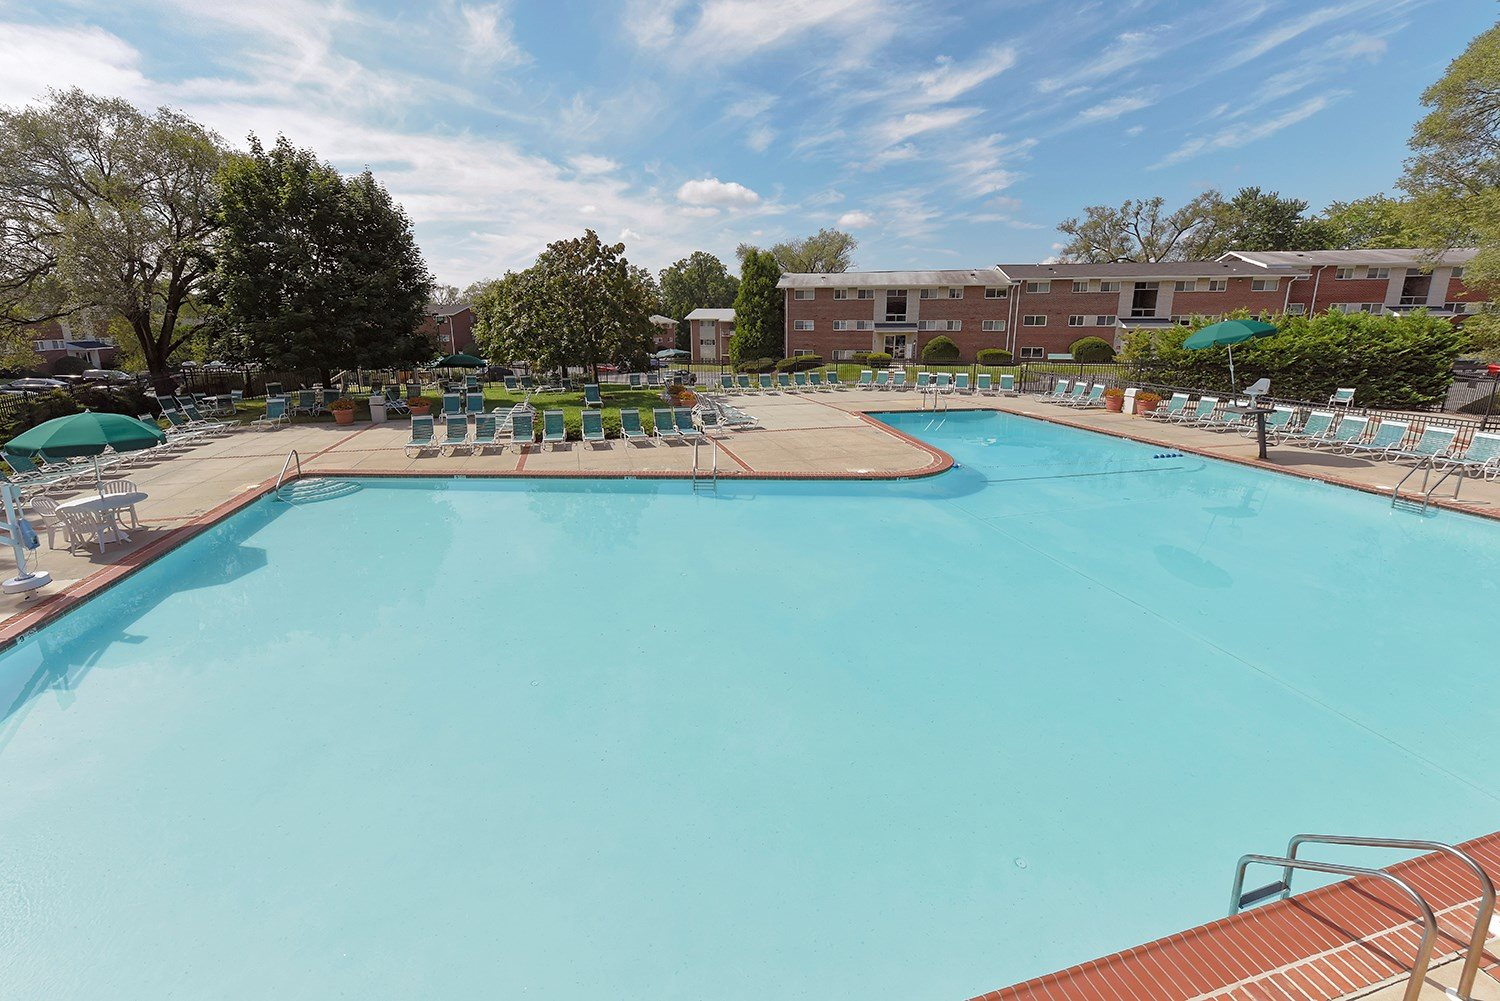 Pool Side Relaxing Area at Ridge Gardens Apartments, Parkville, MD, 21234